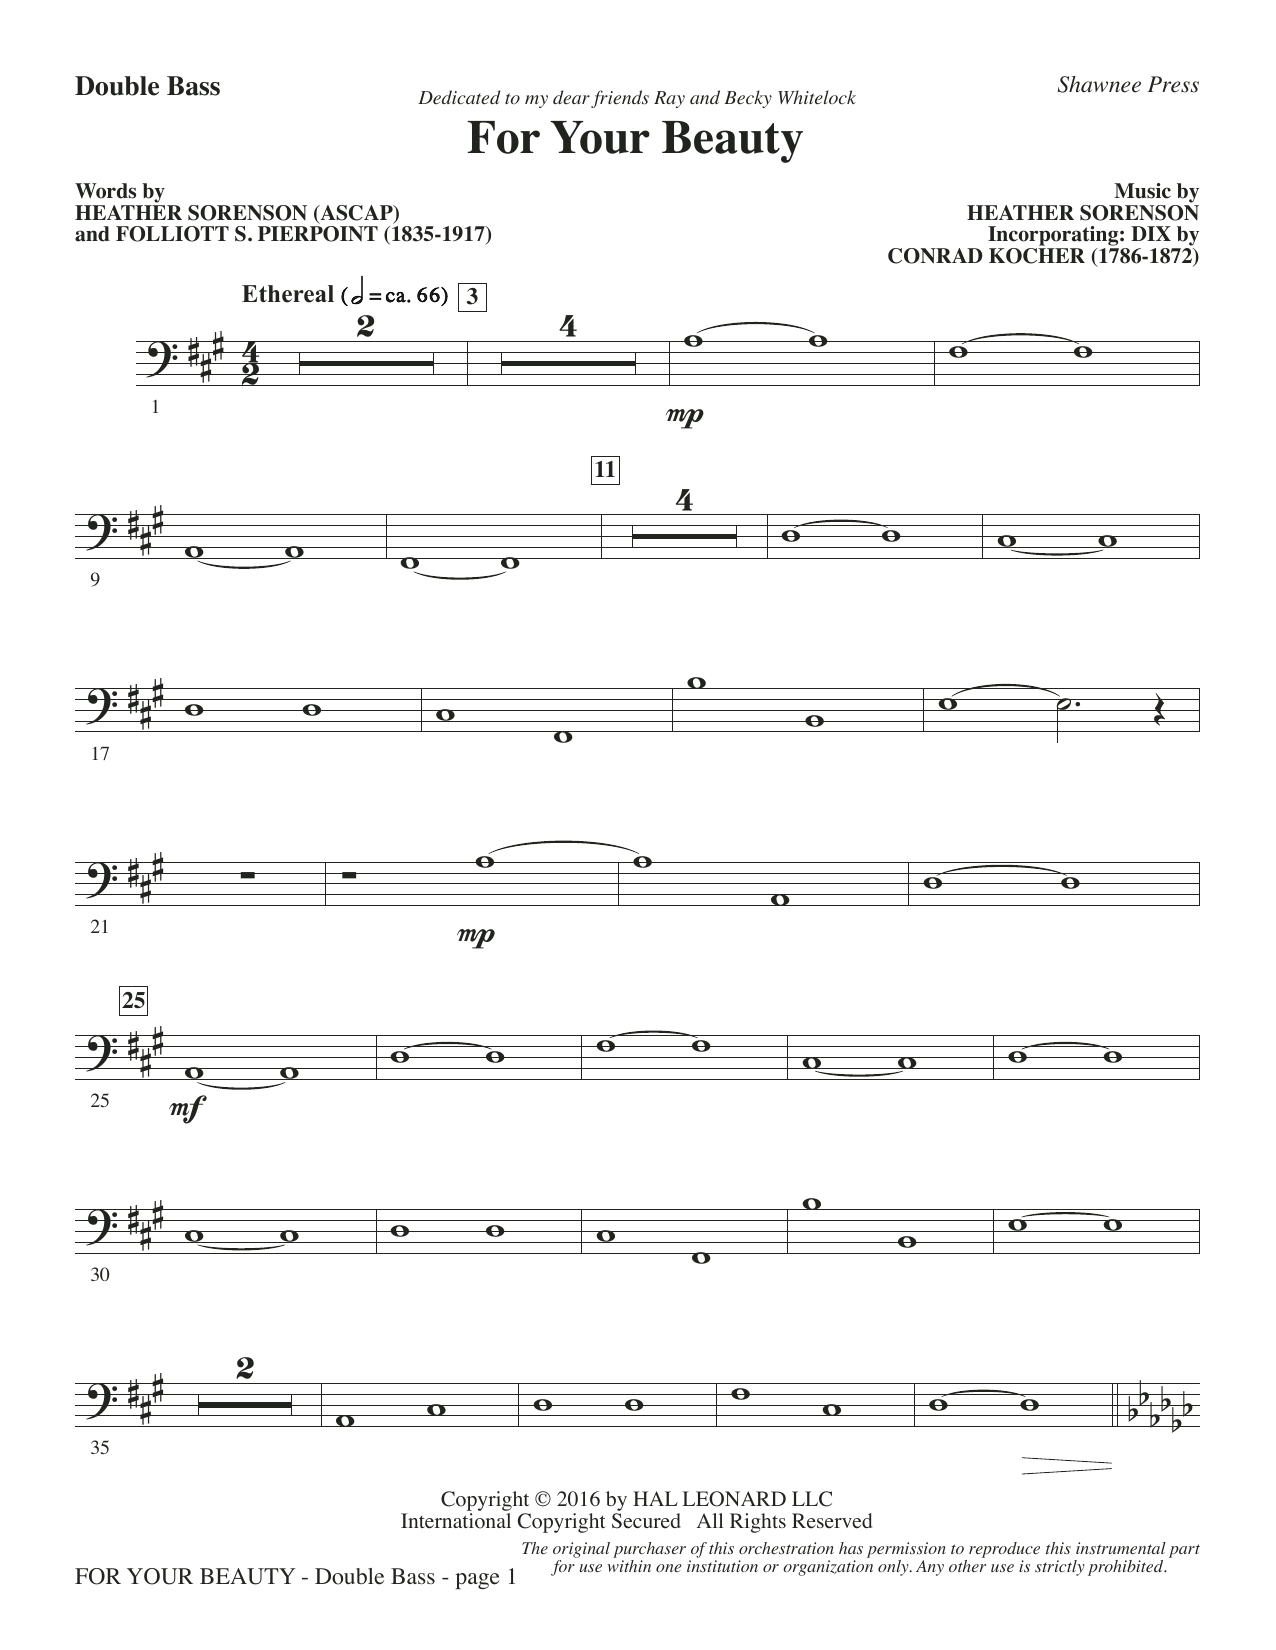 For Your Beauty - Double Bass Sheet Music